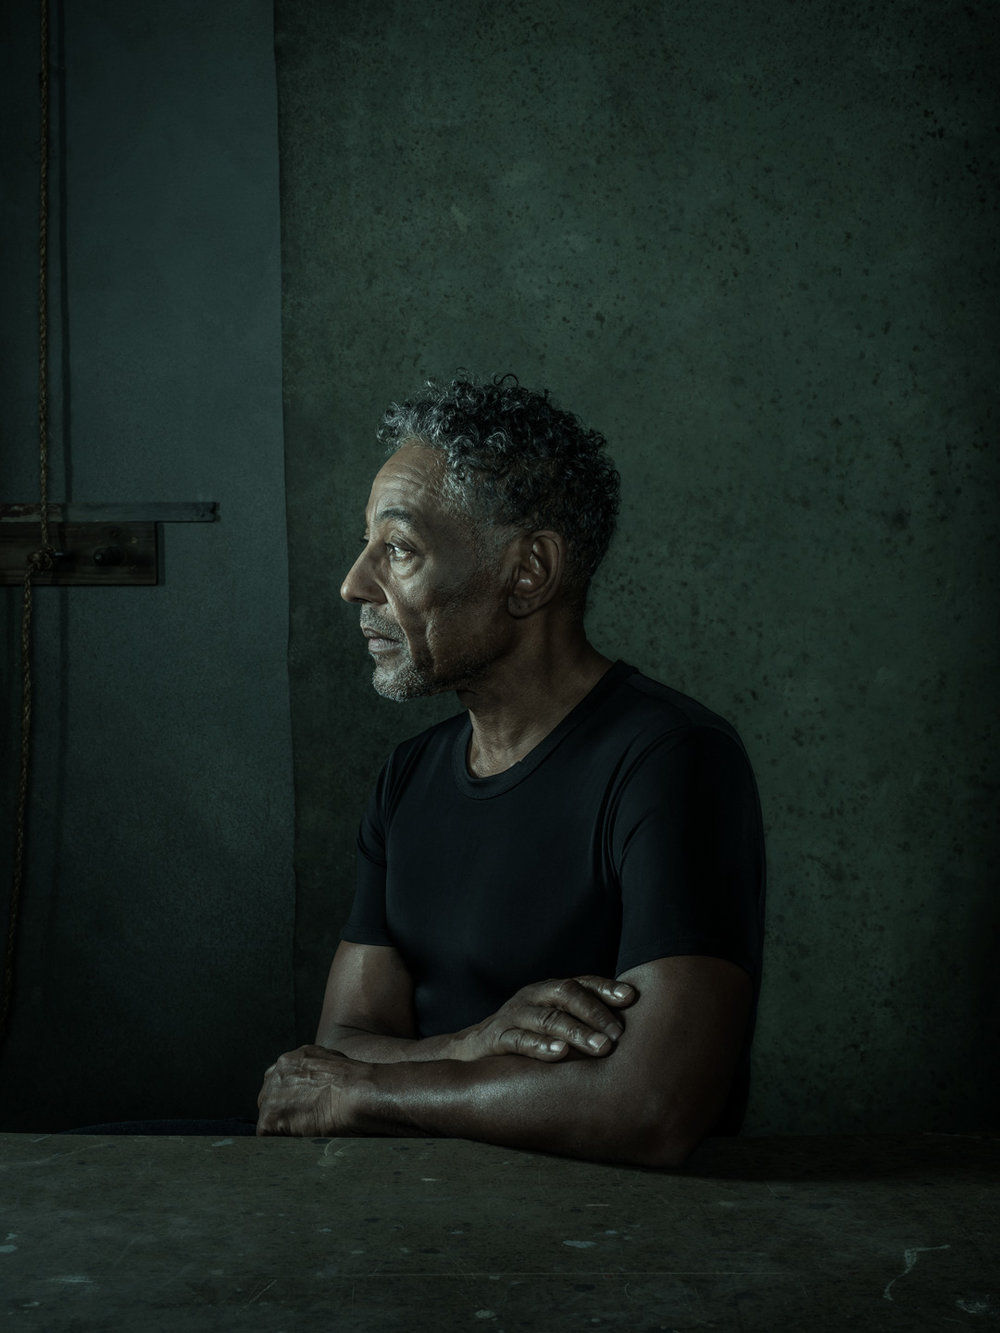 Winters_Breaking_Bad_Giancarlo_Esposito_9400_v2.jpg